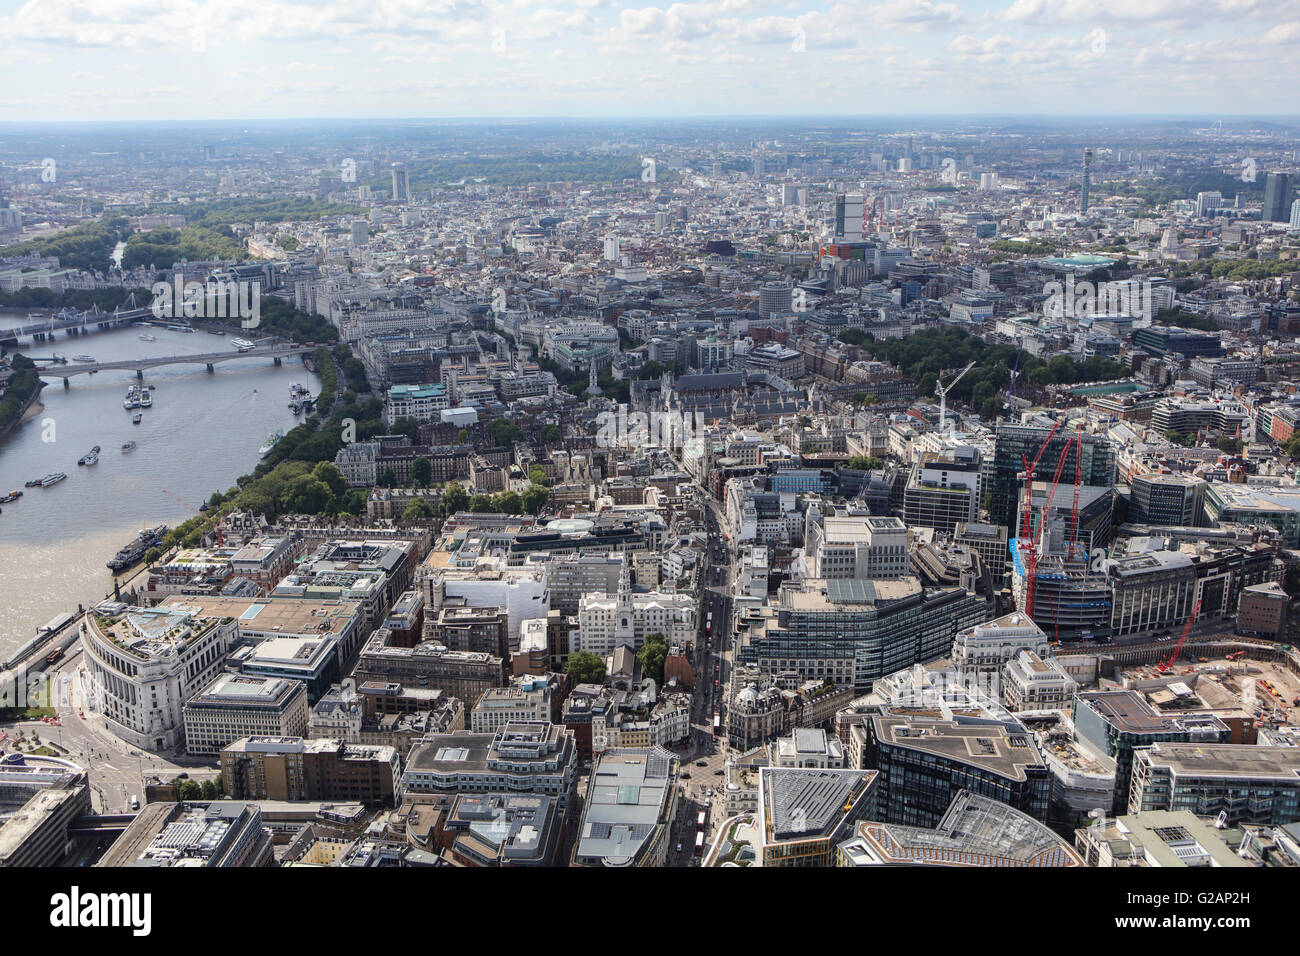 An aerial view of Central London looking from the area of the Old Bailey towards the West Stock Photo